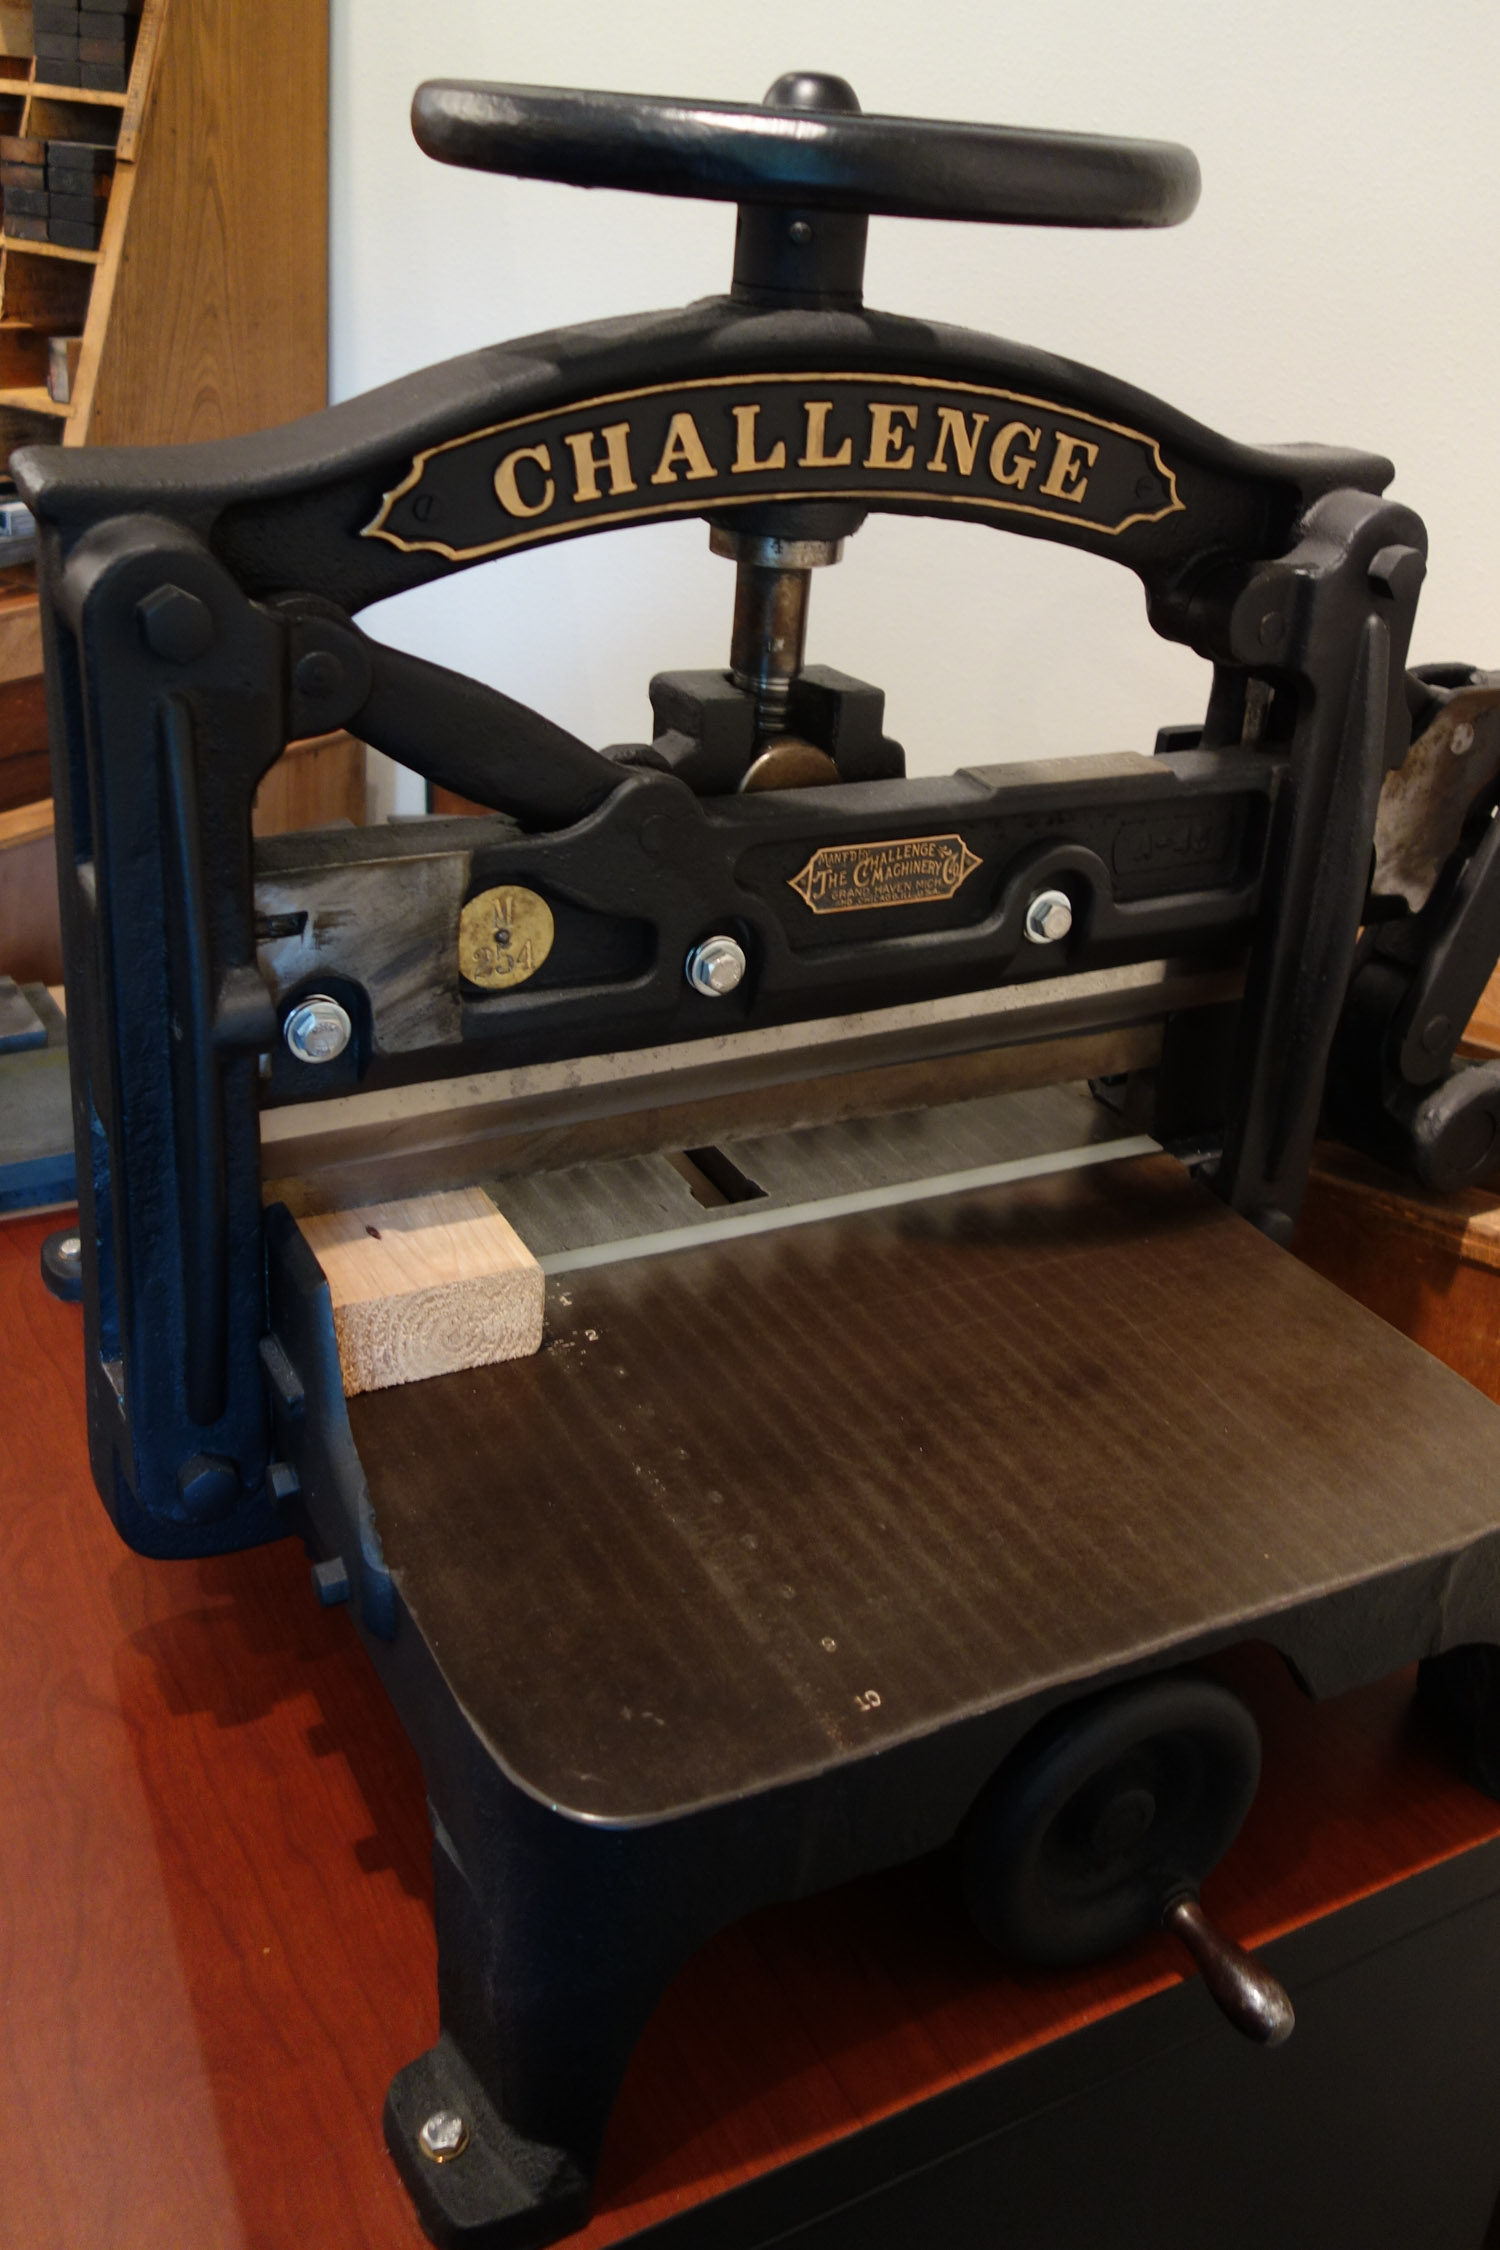 Challenge guillotine paper cutter from 1903.